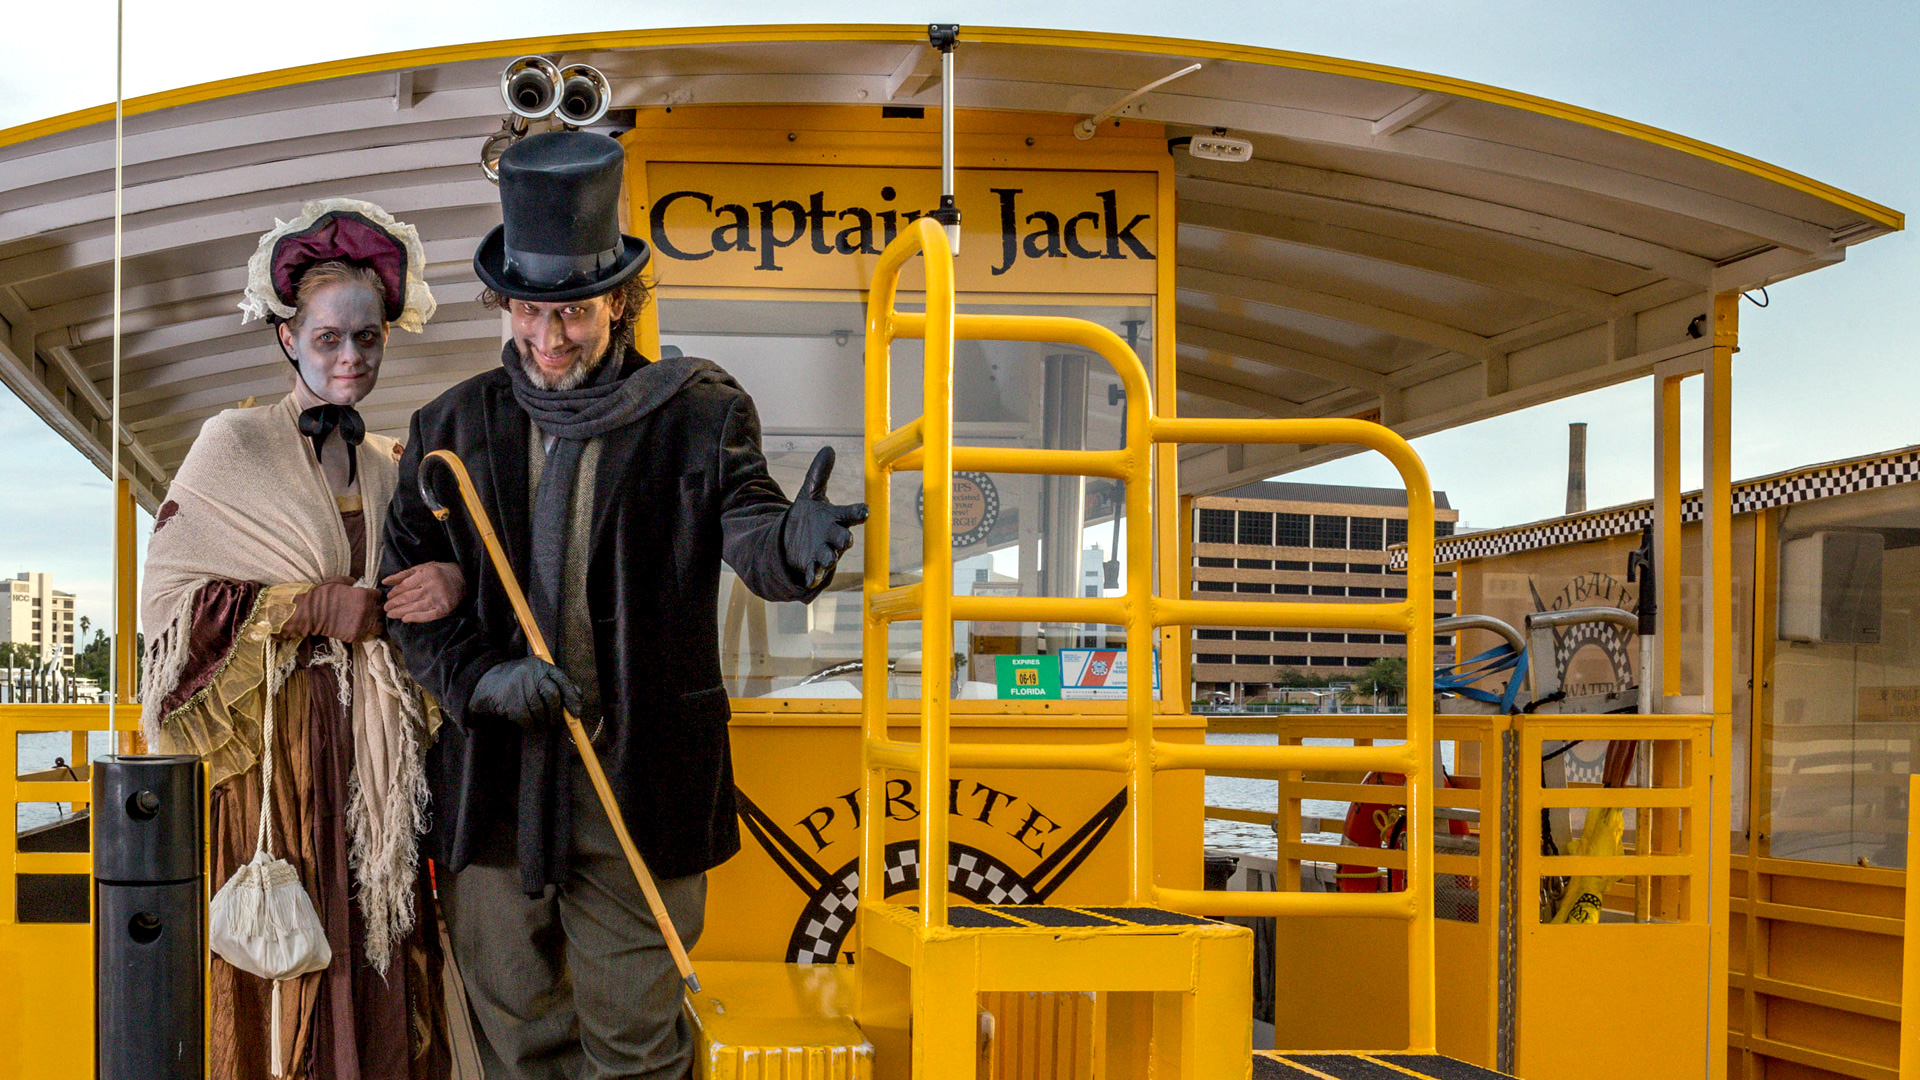 Hop On The Haunted River Tours This Halloween Aboard